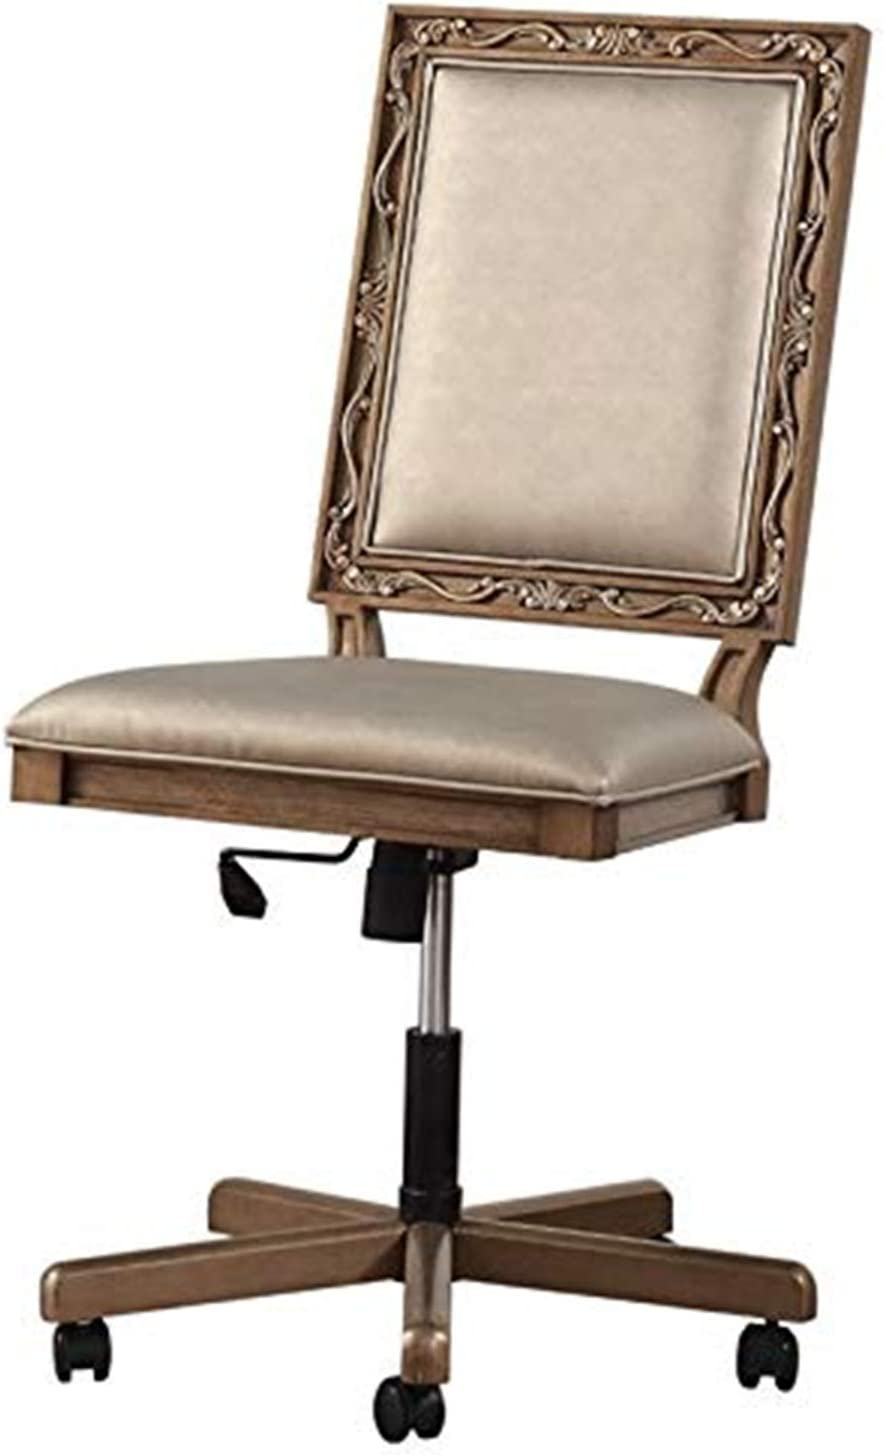 ACME Furniture Orianne Executive Office Chair, Champagne PU and Antique Gold